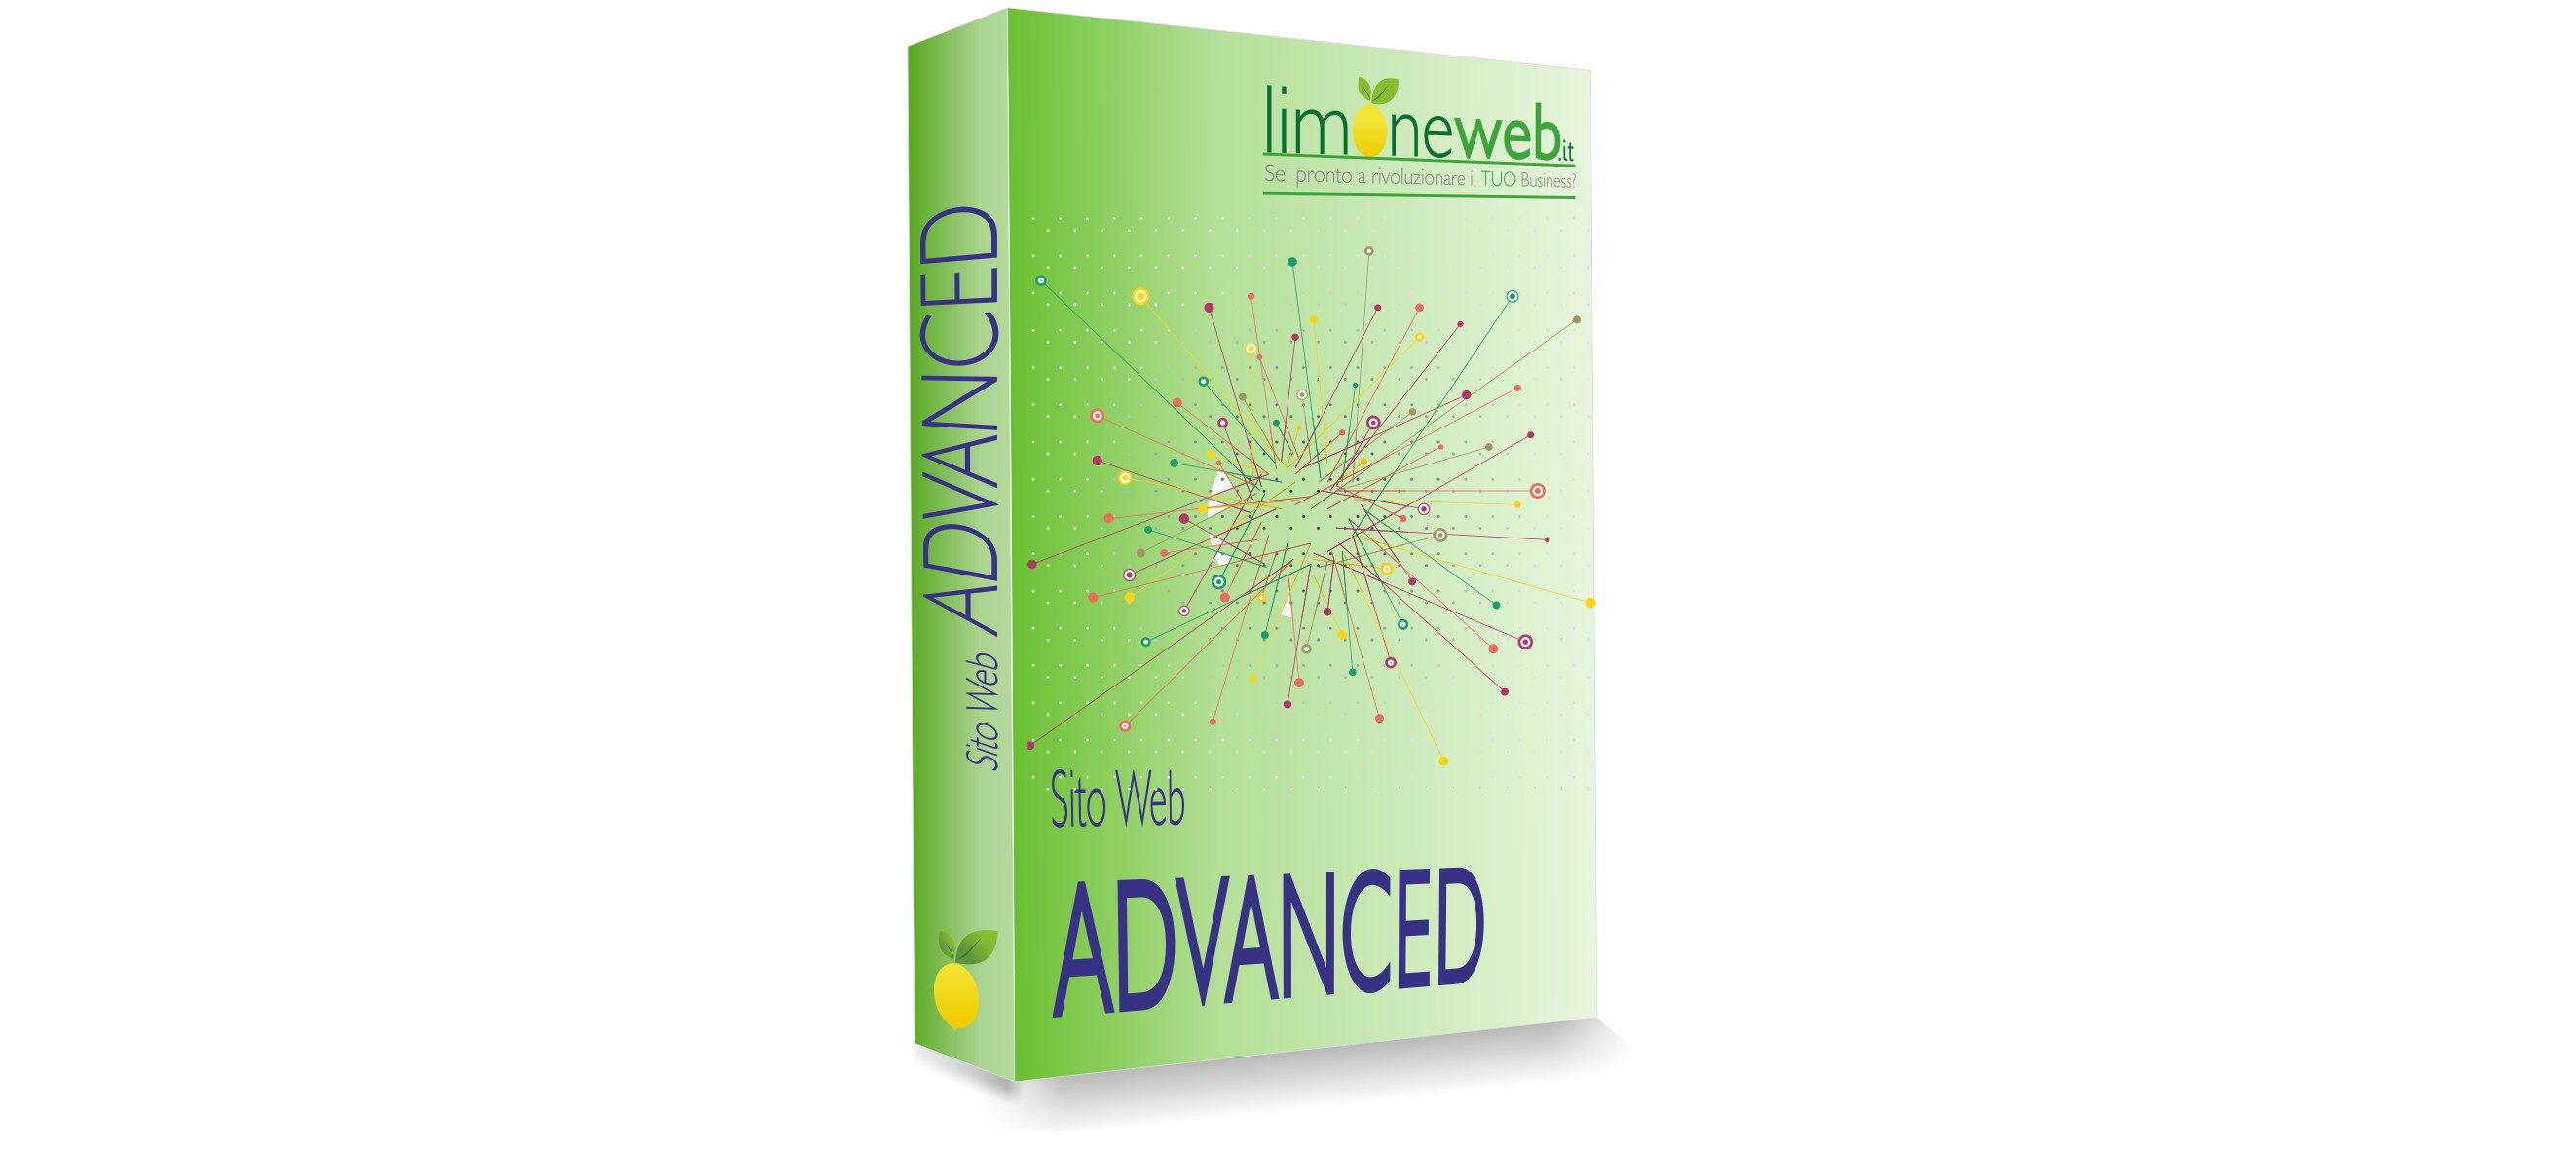 LimoneWeb.it - Sito Web Advanced